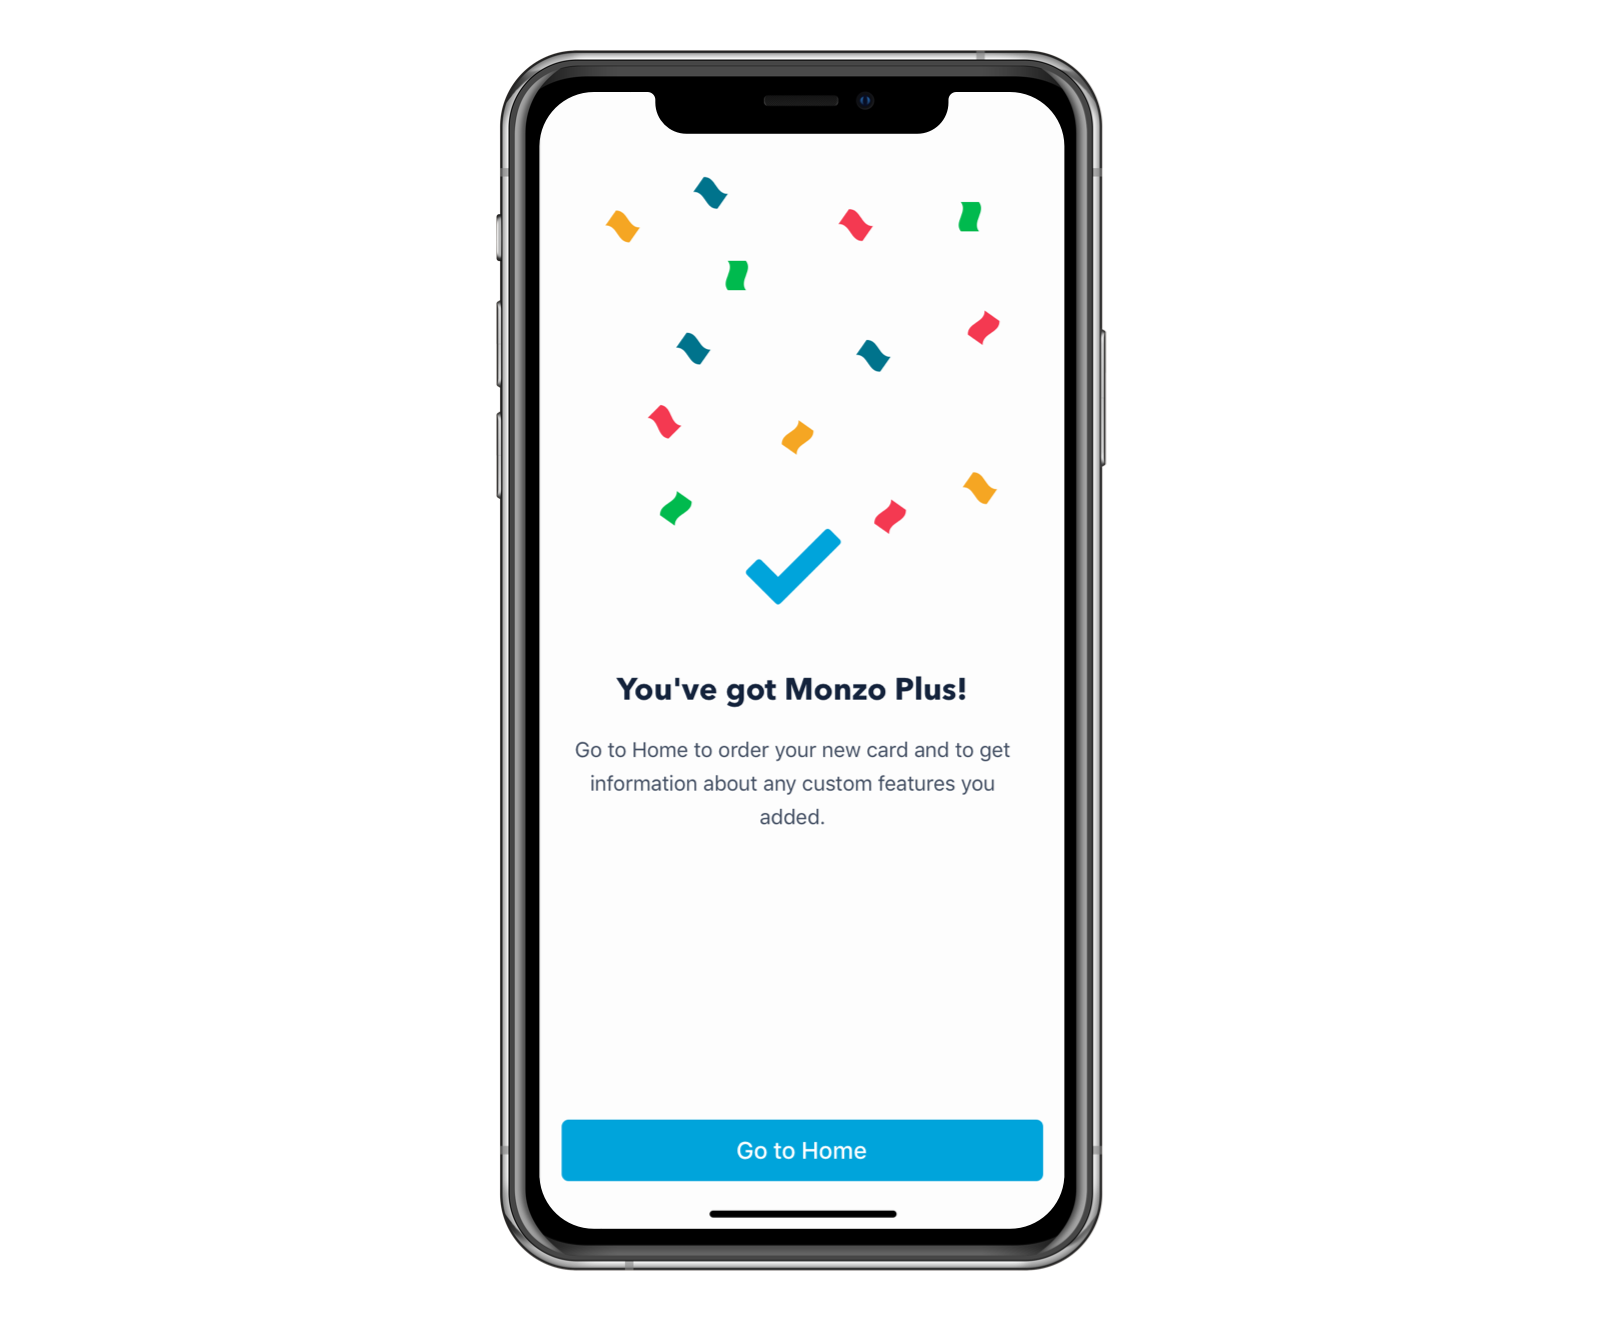 Monzo Plus confirmation screen